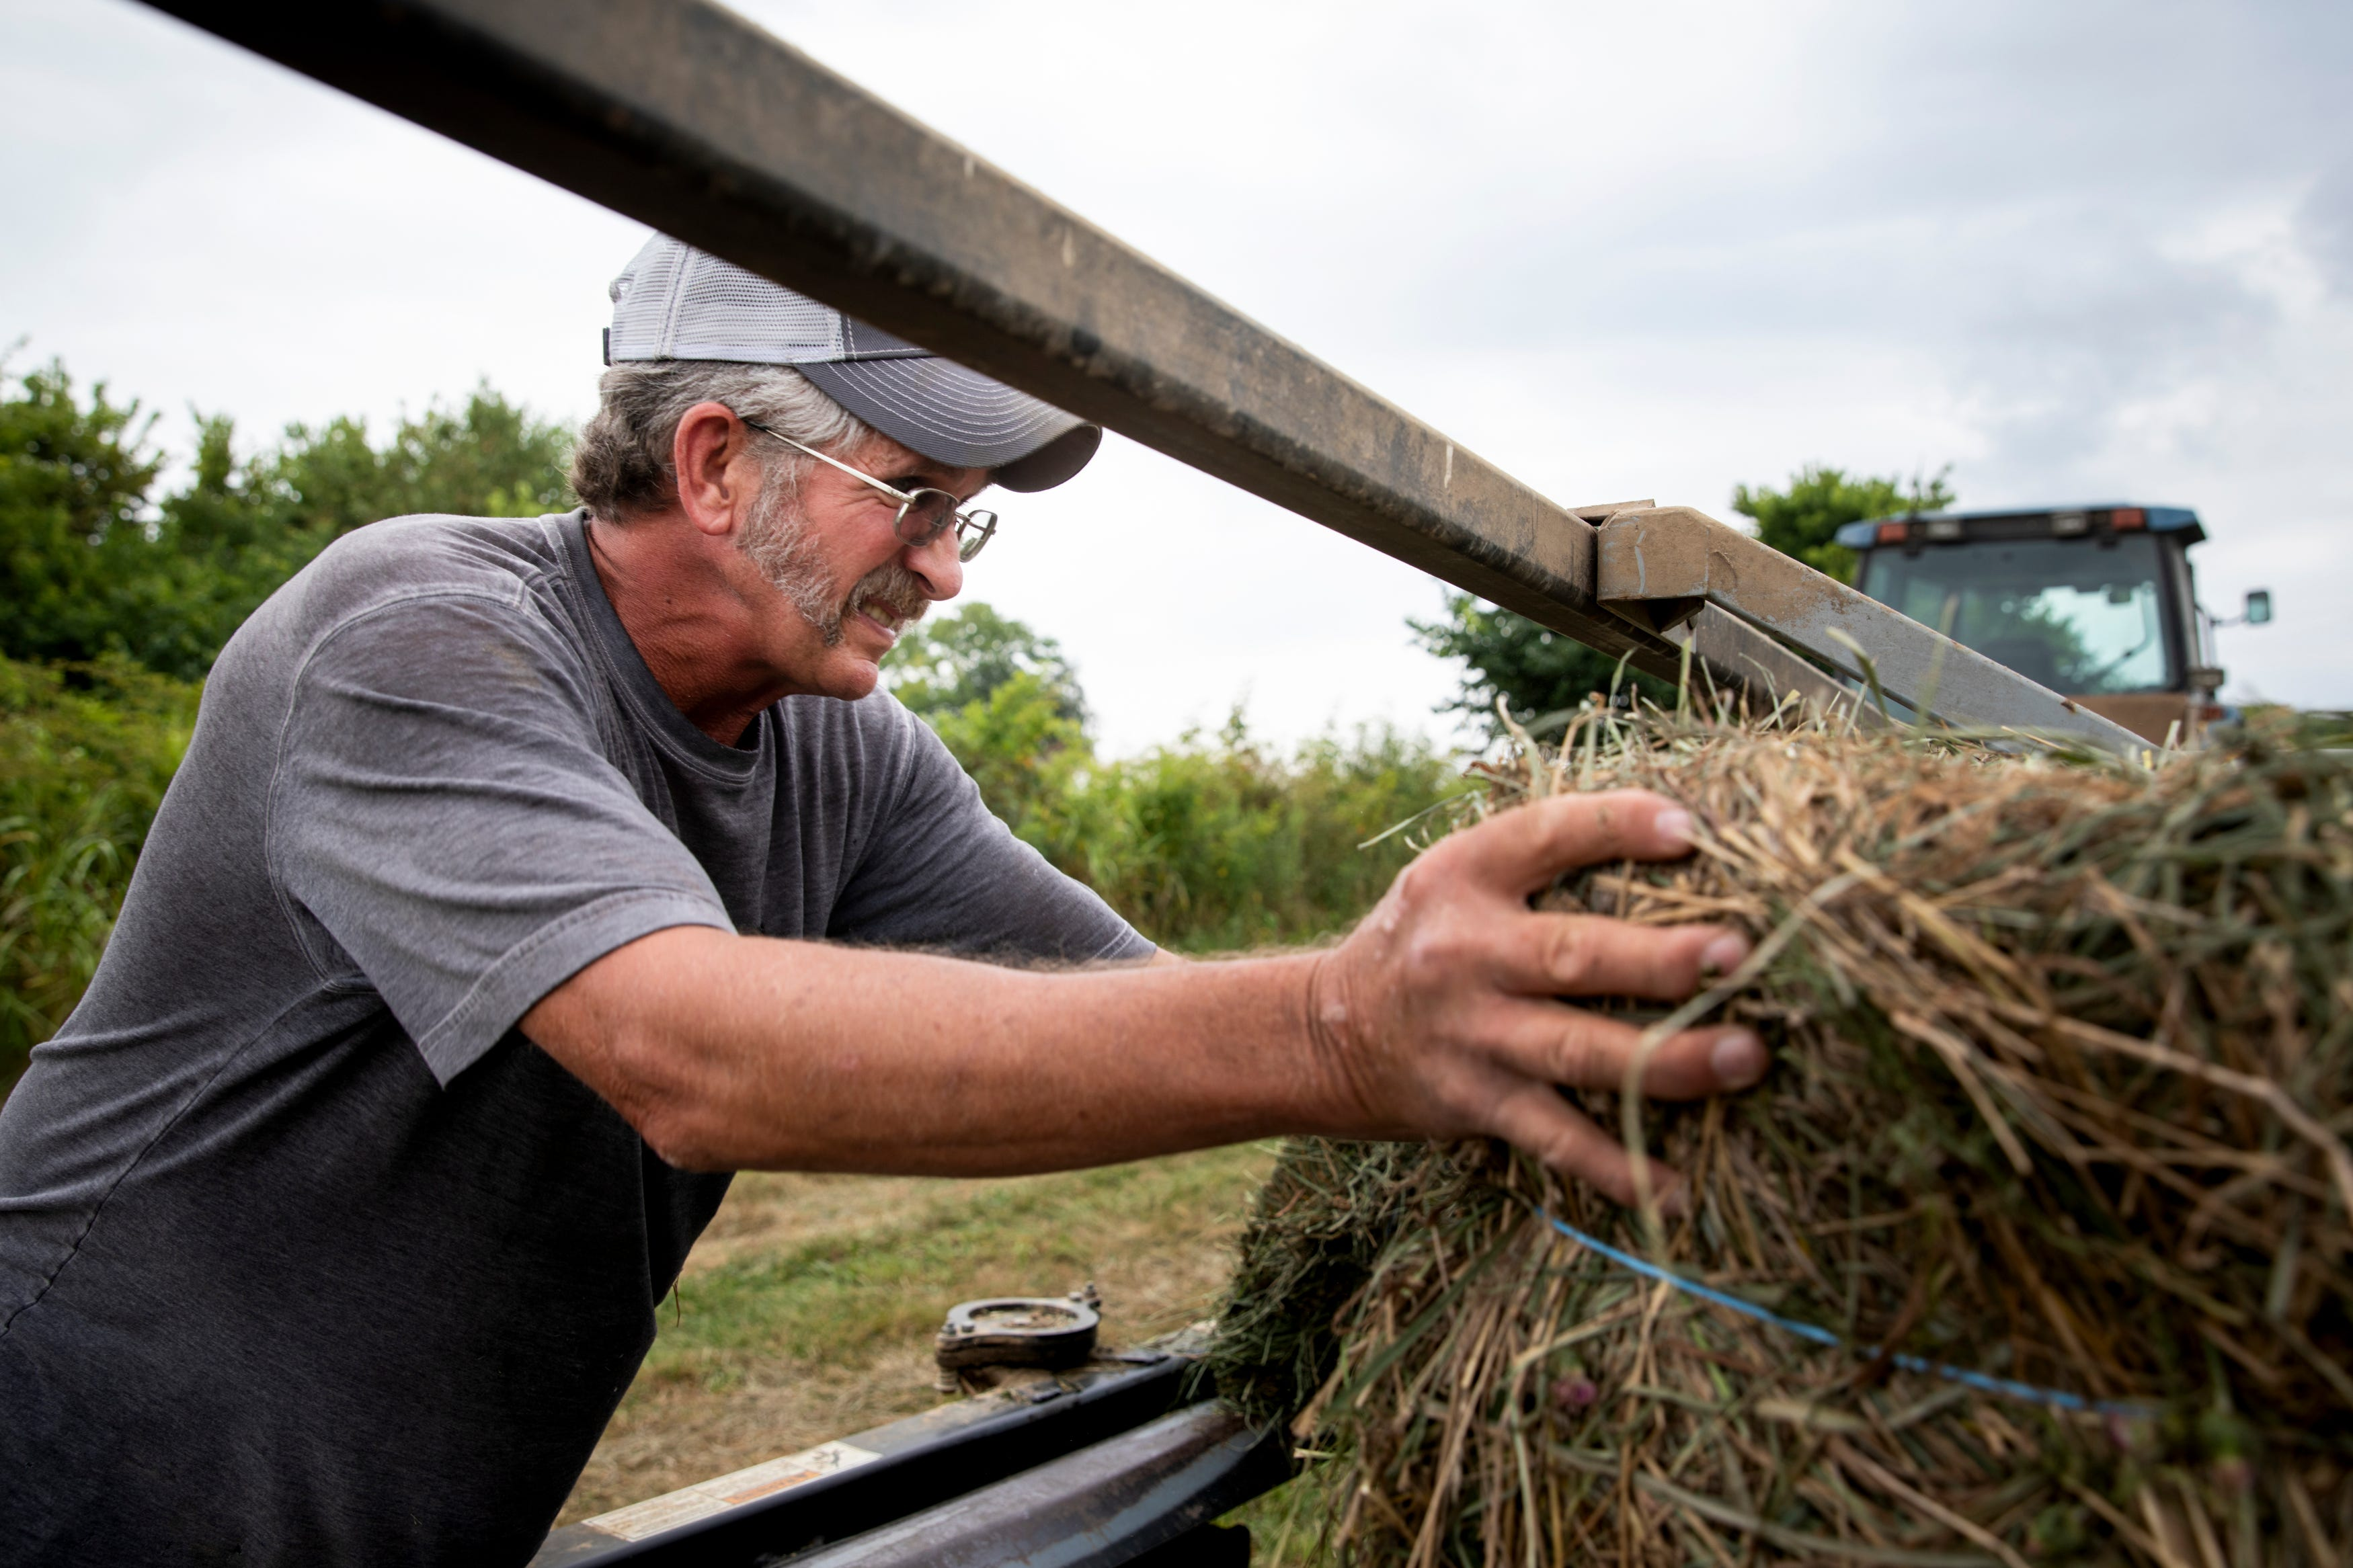 Troy Bradford works on his hay baler on his farm in Harrison County, Ky., on Monday, August 9, 2021.